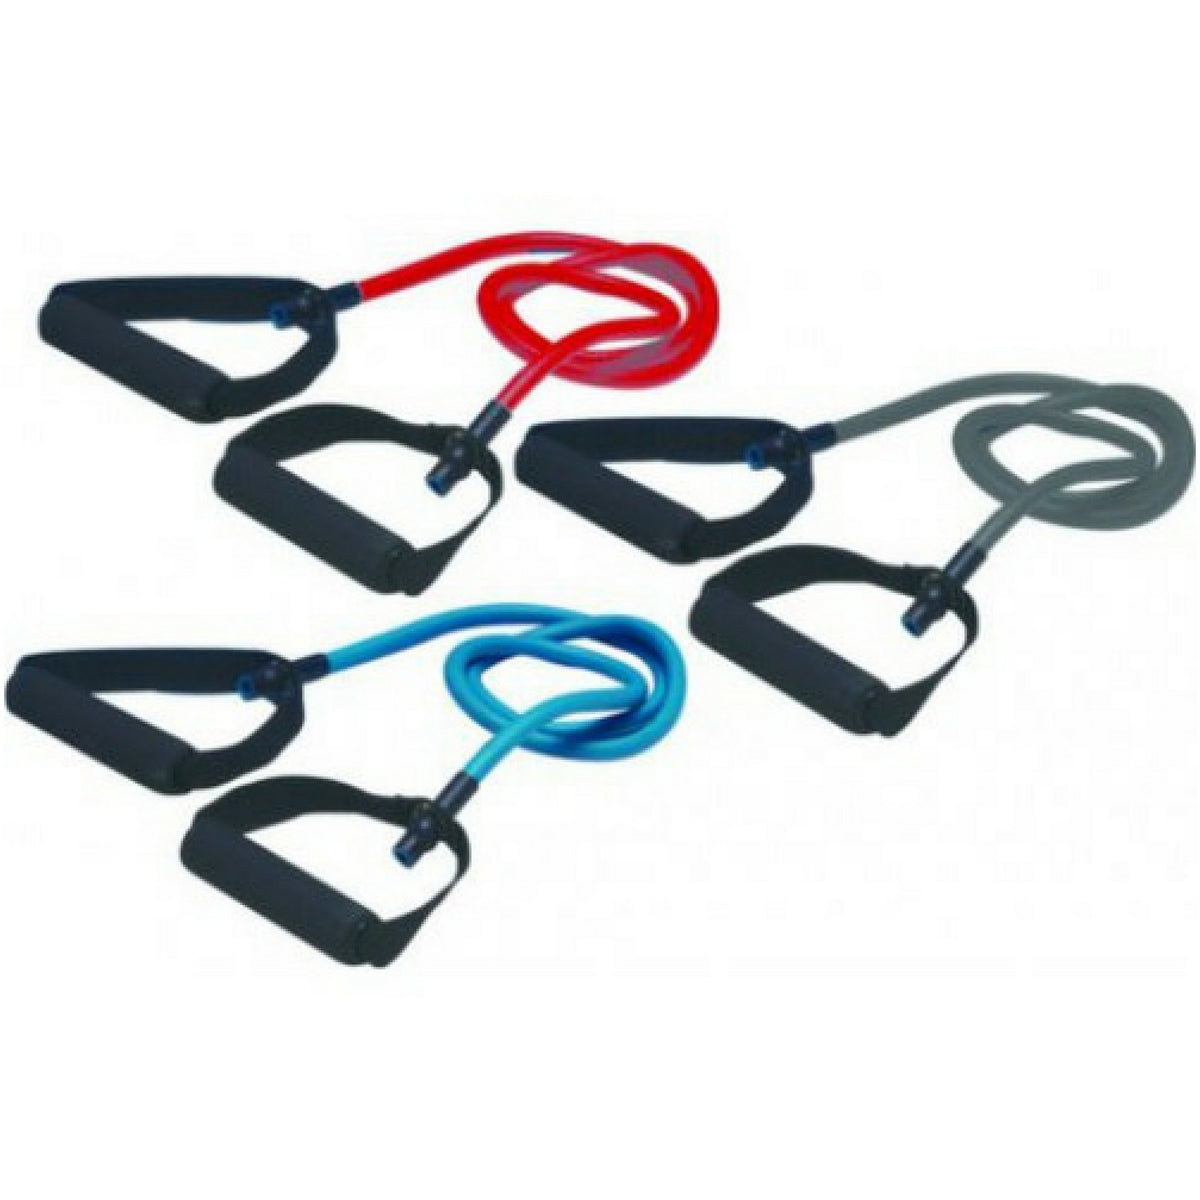 Medalist Resistance Band with handle